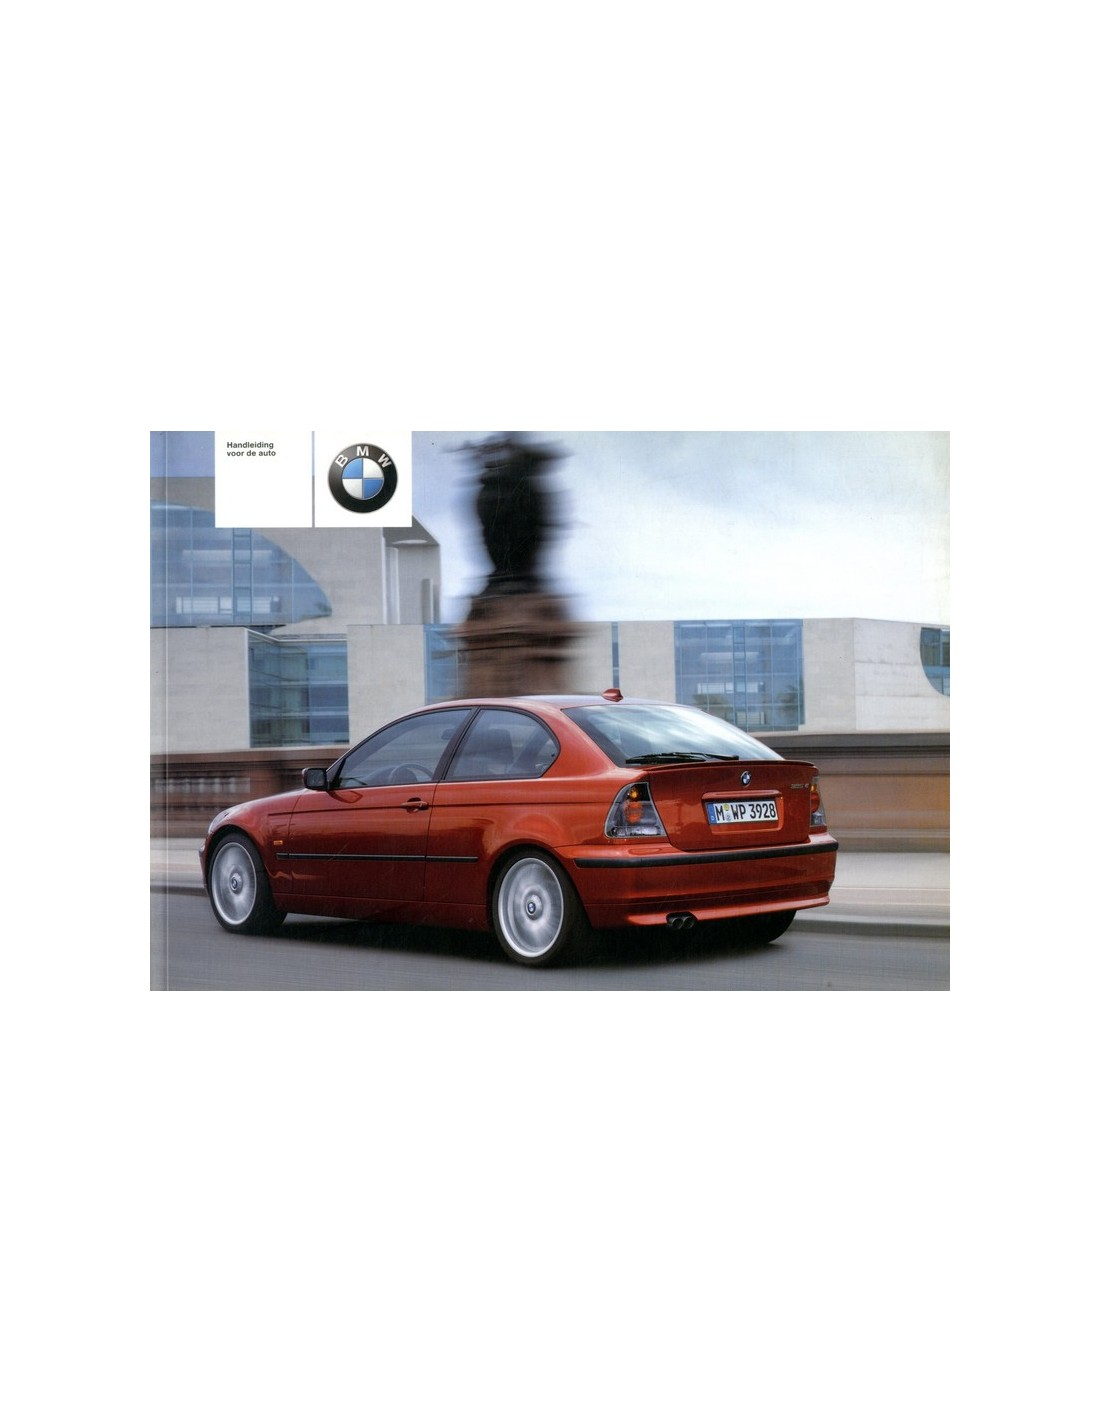 2002 bmw 3 series compact owner 39 s manual dutch. Black Bedroom Furniture Sets. Home Design Ideas